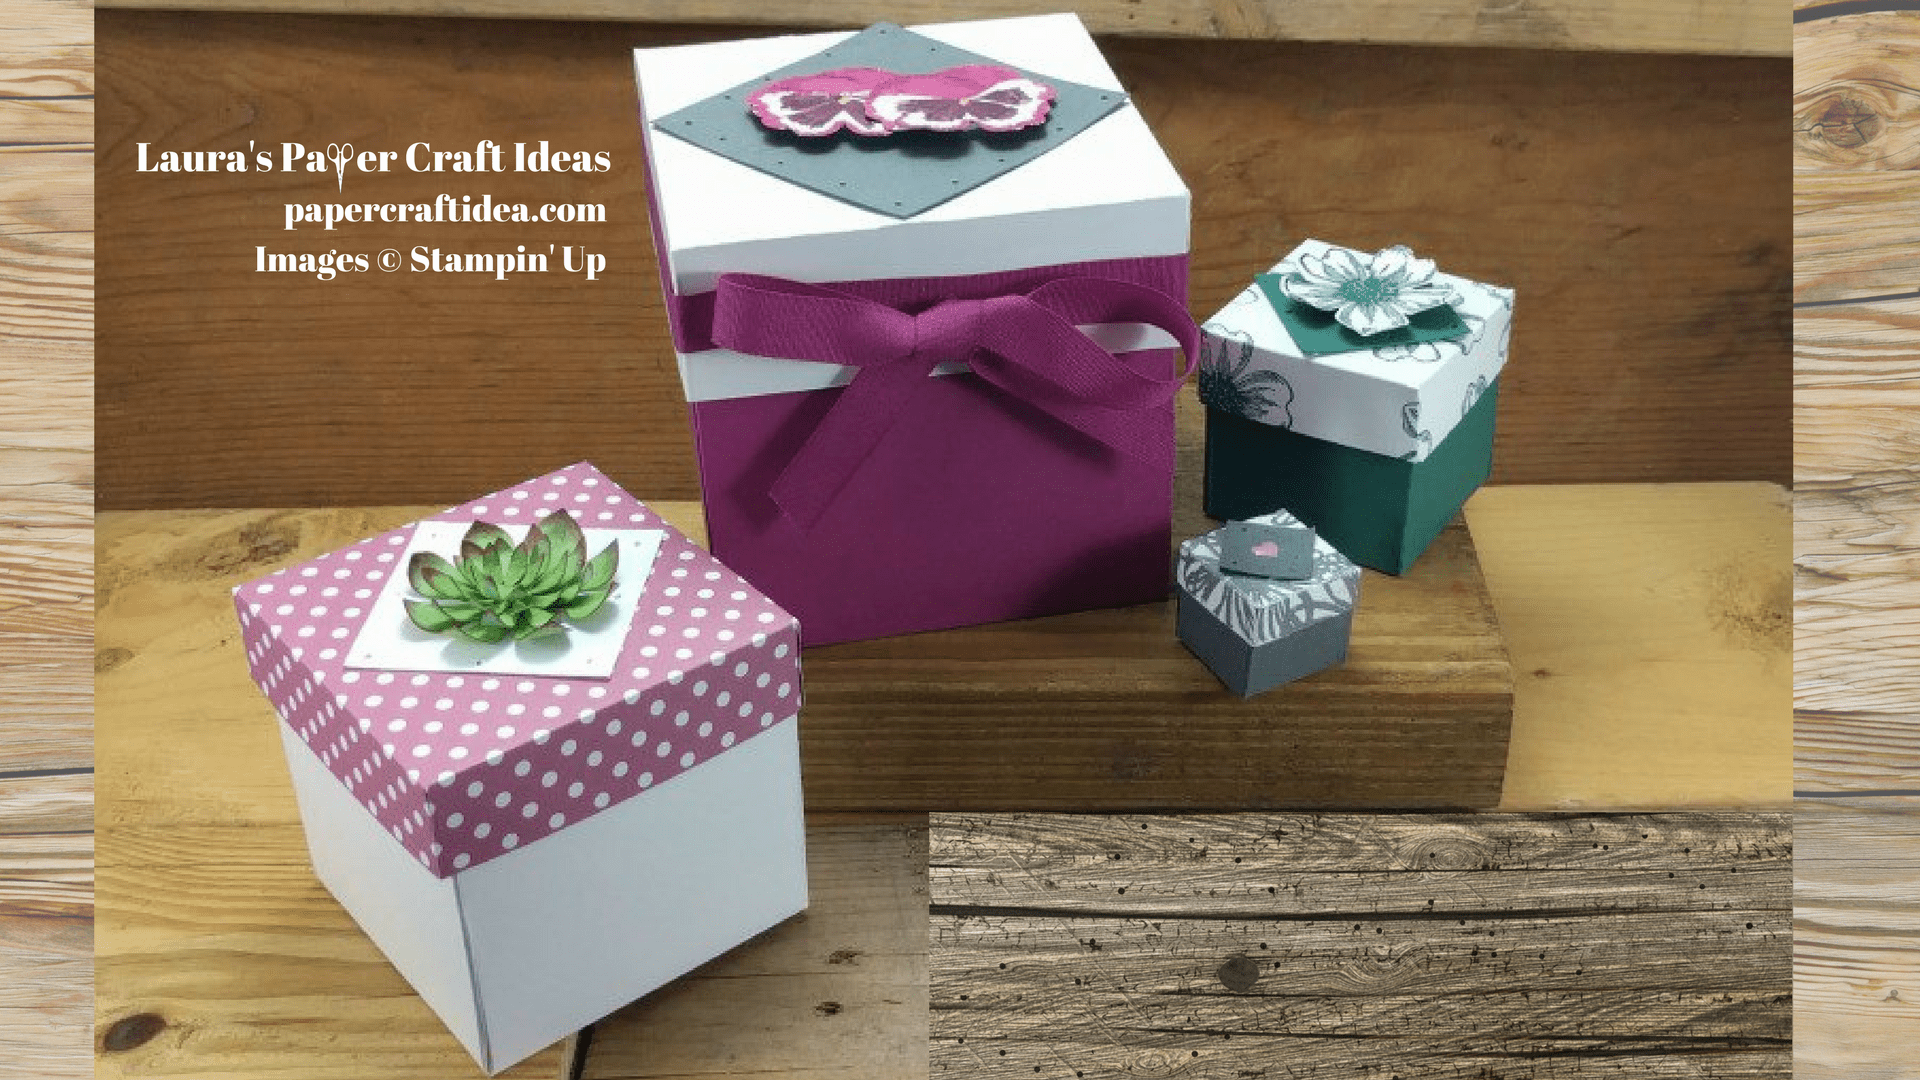 How To Make A Paper Box Stampin Up Laura S Paper Craft Ideas